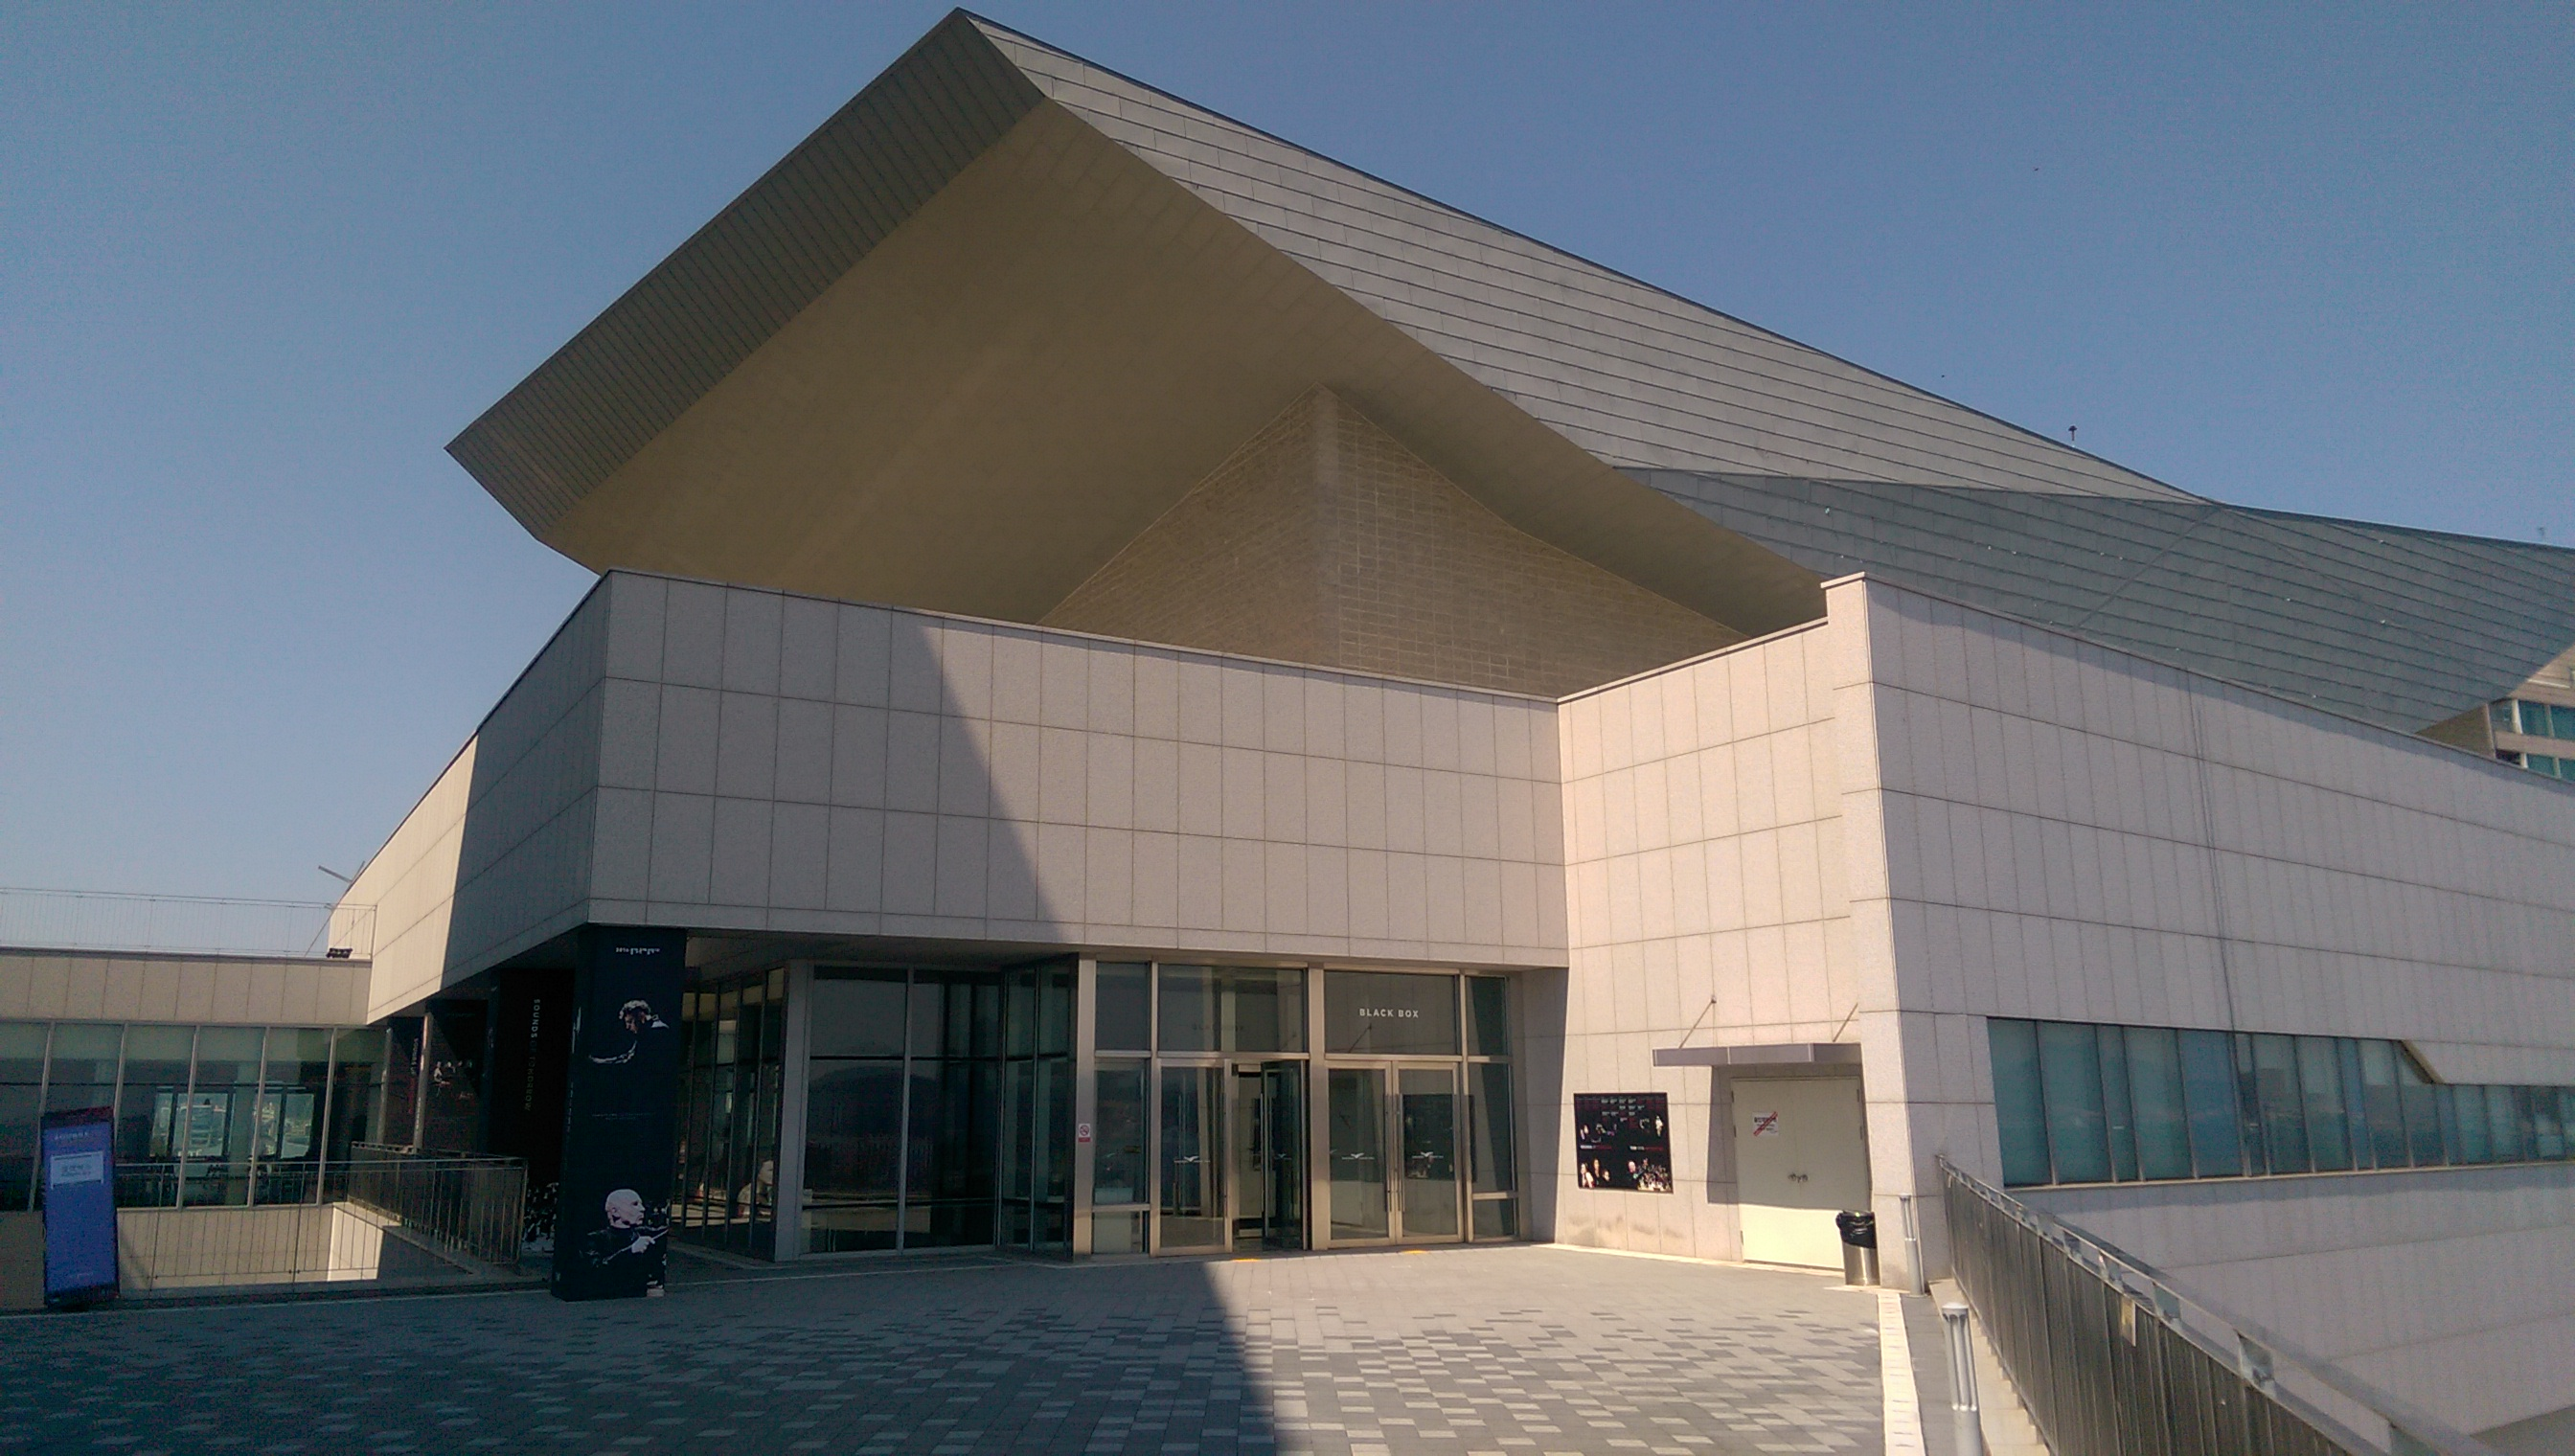 An outside view of the TIMF Black Box theatre.